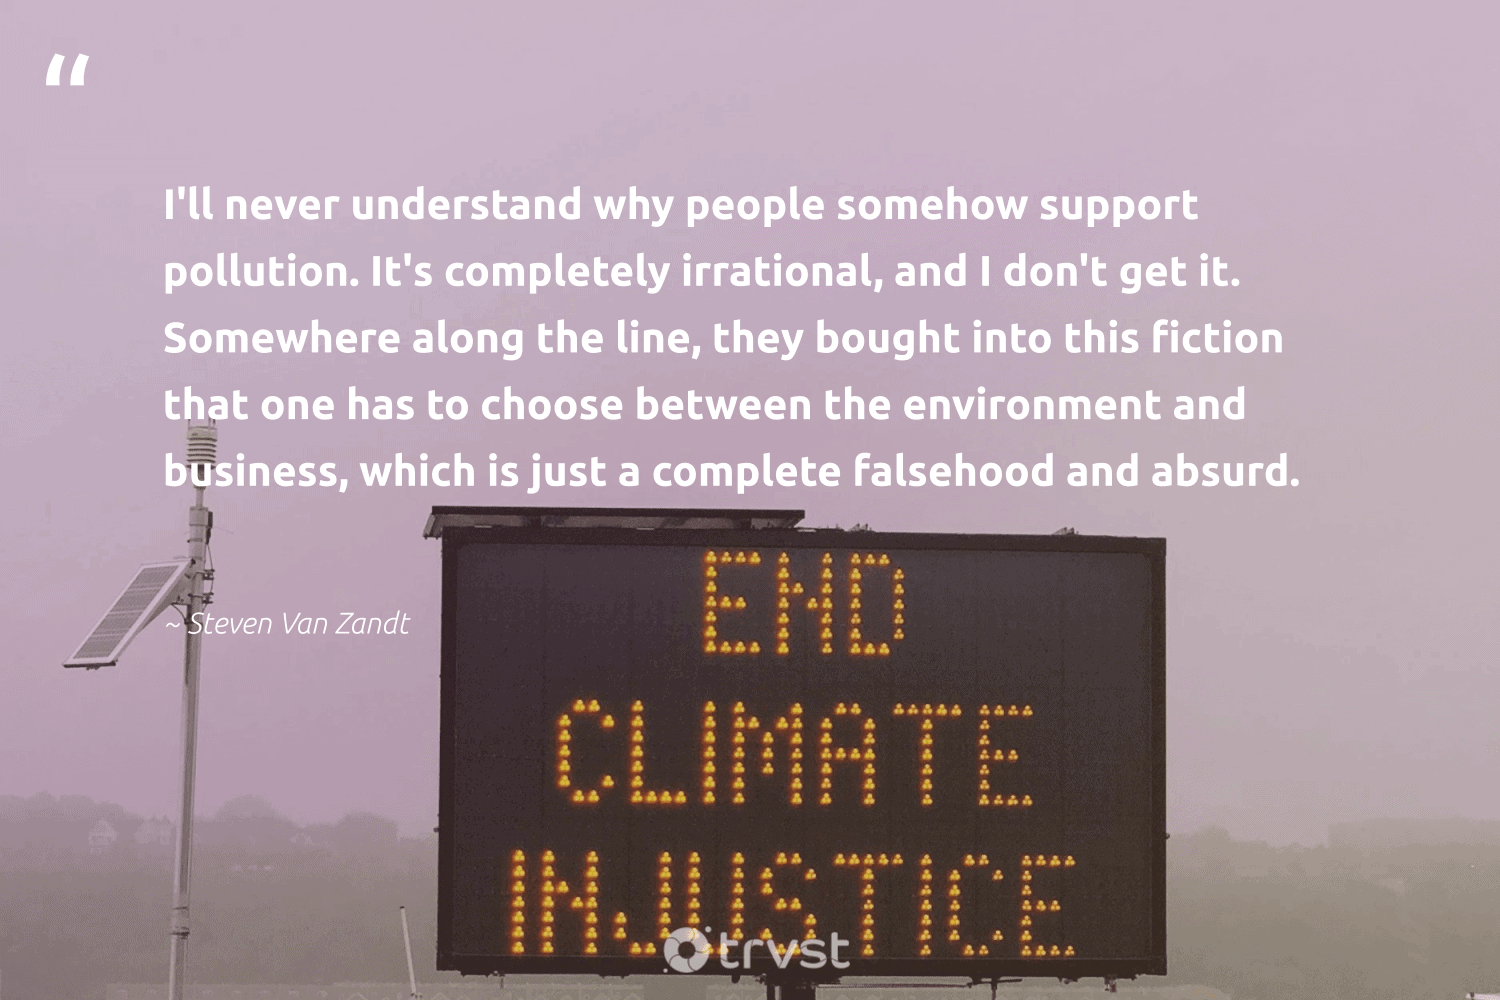 """""""I'll never understand why people somehow support pollution. It's completely irrational, and I don't get it. Somewhere along the line, they bought into this fiction that one has to choose between the environment and business, which is just a complete falsehood and absurd.""""  - Steven Van Zandt #trvst #quotes #environment #pollution #mothernature #globalwarming #wildlifeplanet #bethechange #planet #climatefight #giveback #planetearthfirst"""